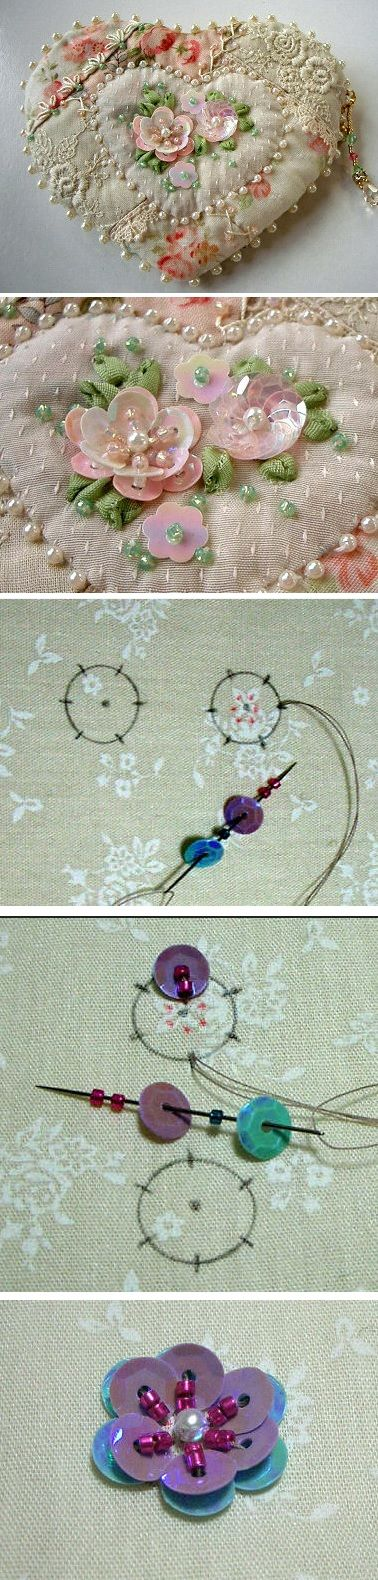 If i ever get the time and inclination again... Idea for small purse or needle keep - and sequin flower how-to.: